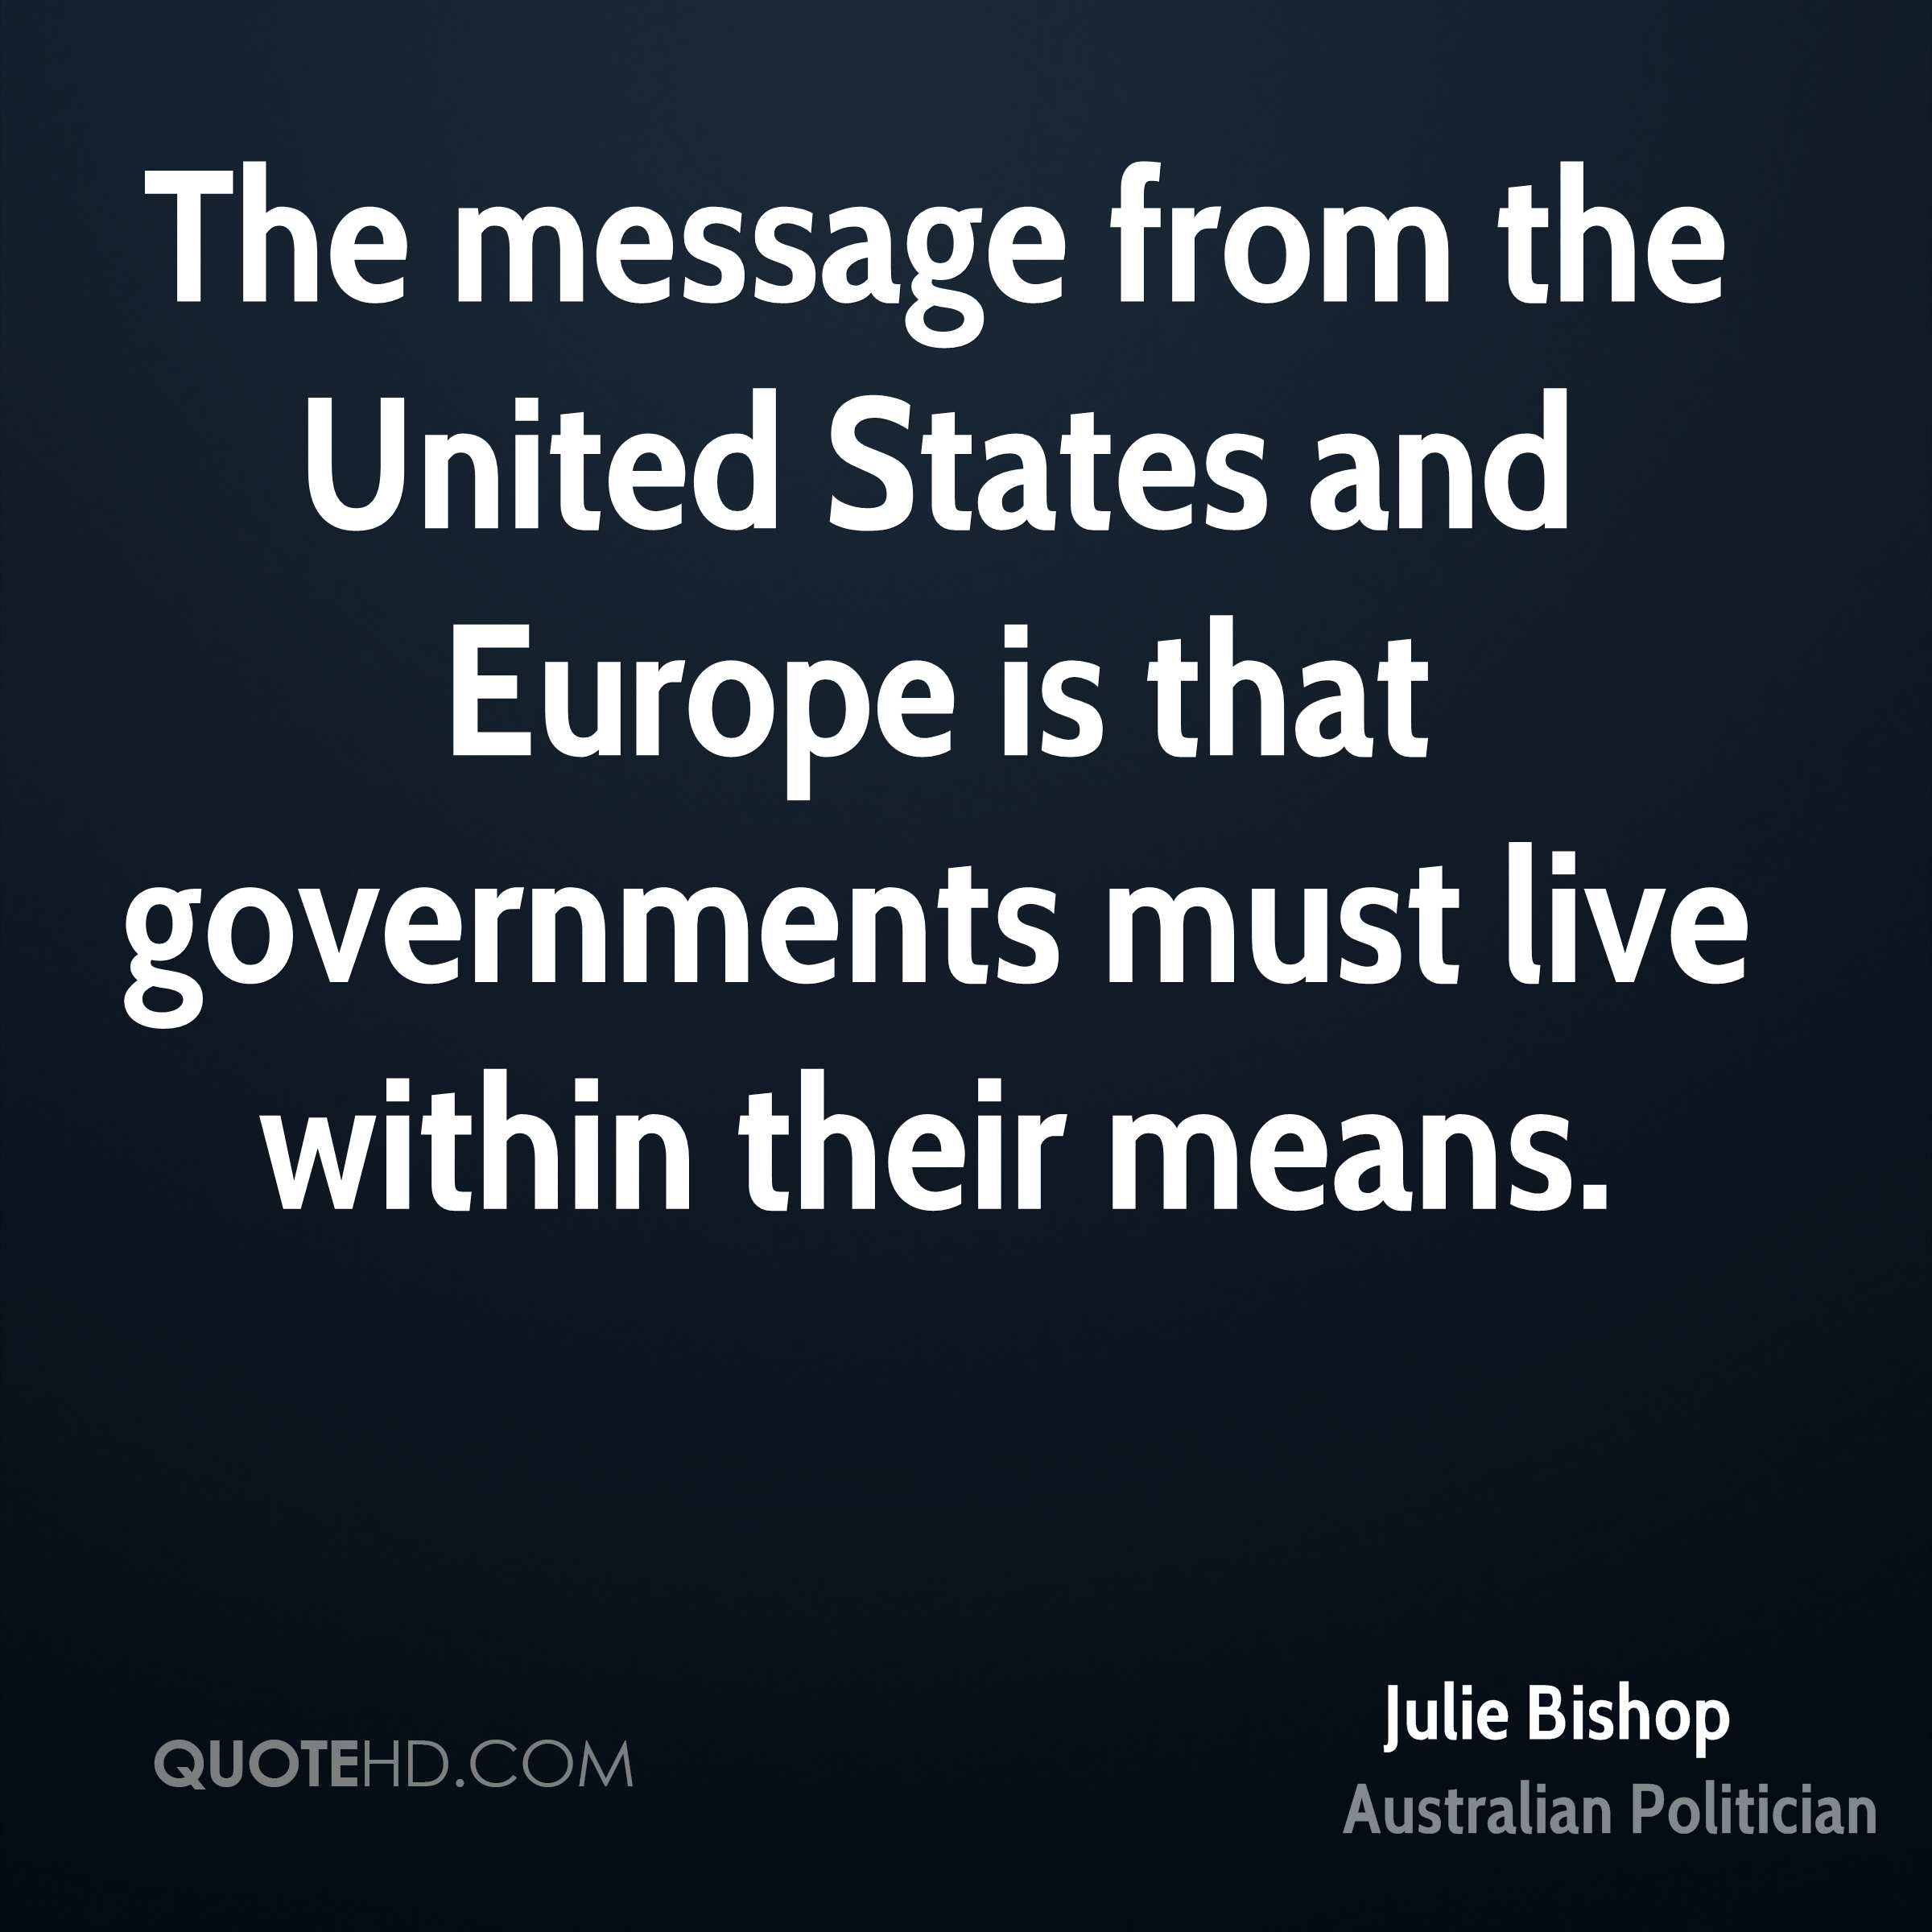 The message from the United States and Europe is that governments must live within their means.